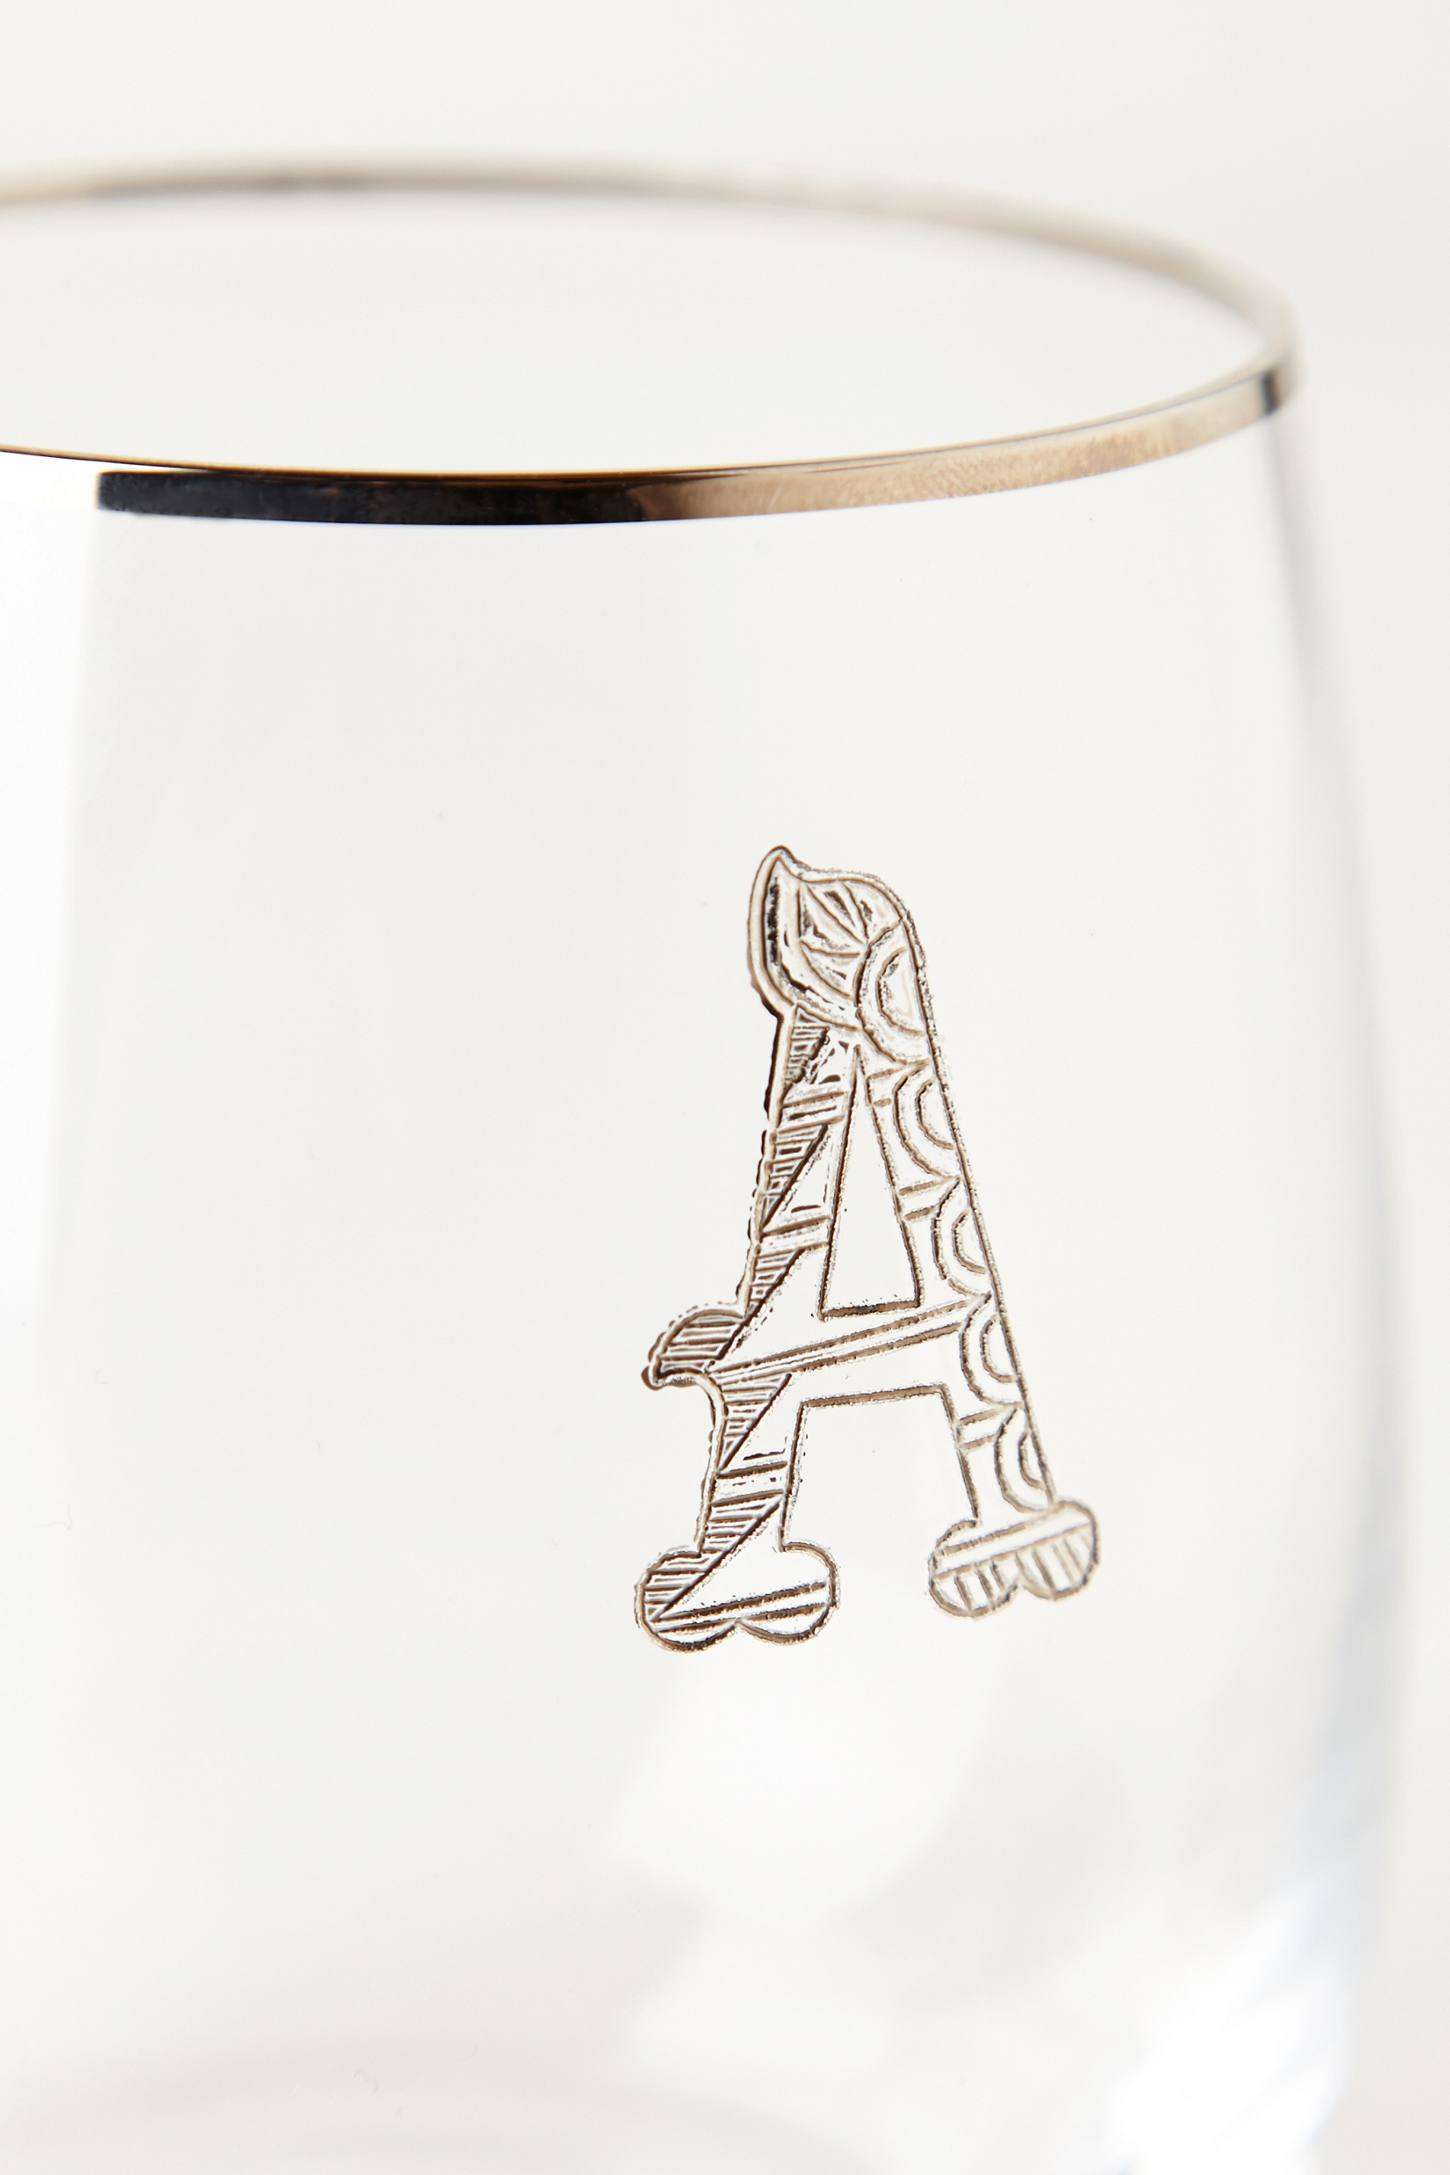 Slide View: 6: Etched Monogram Glass